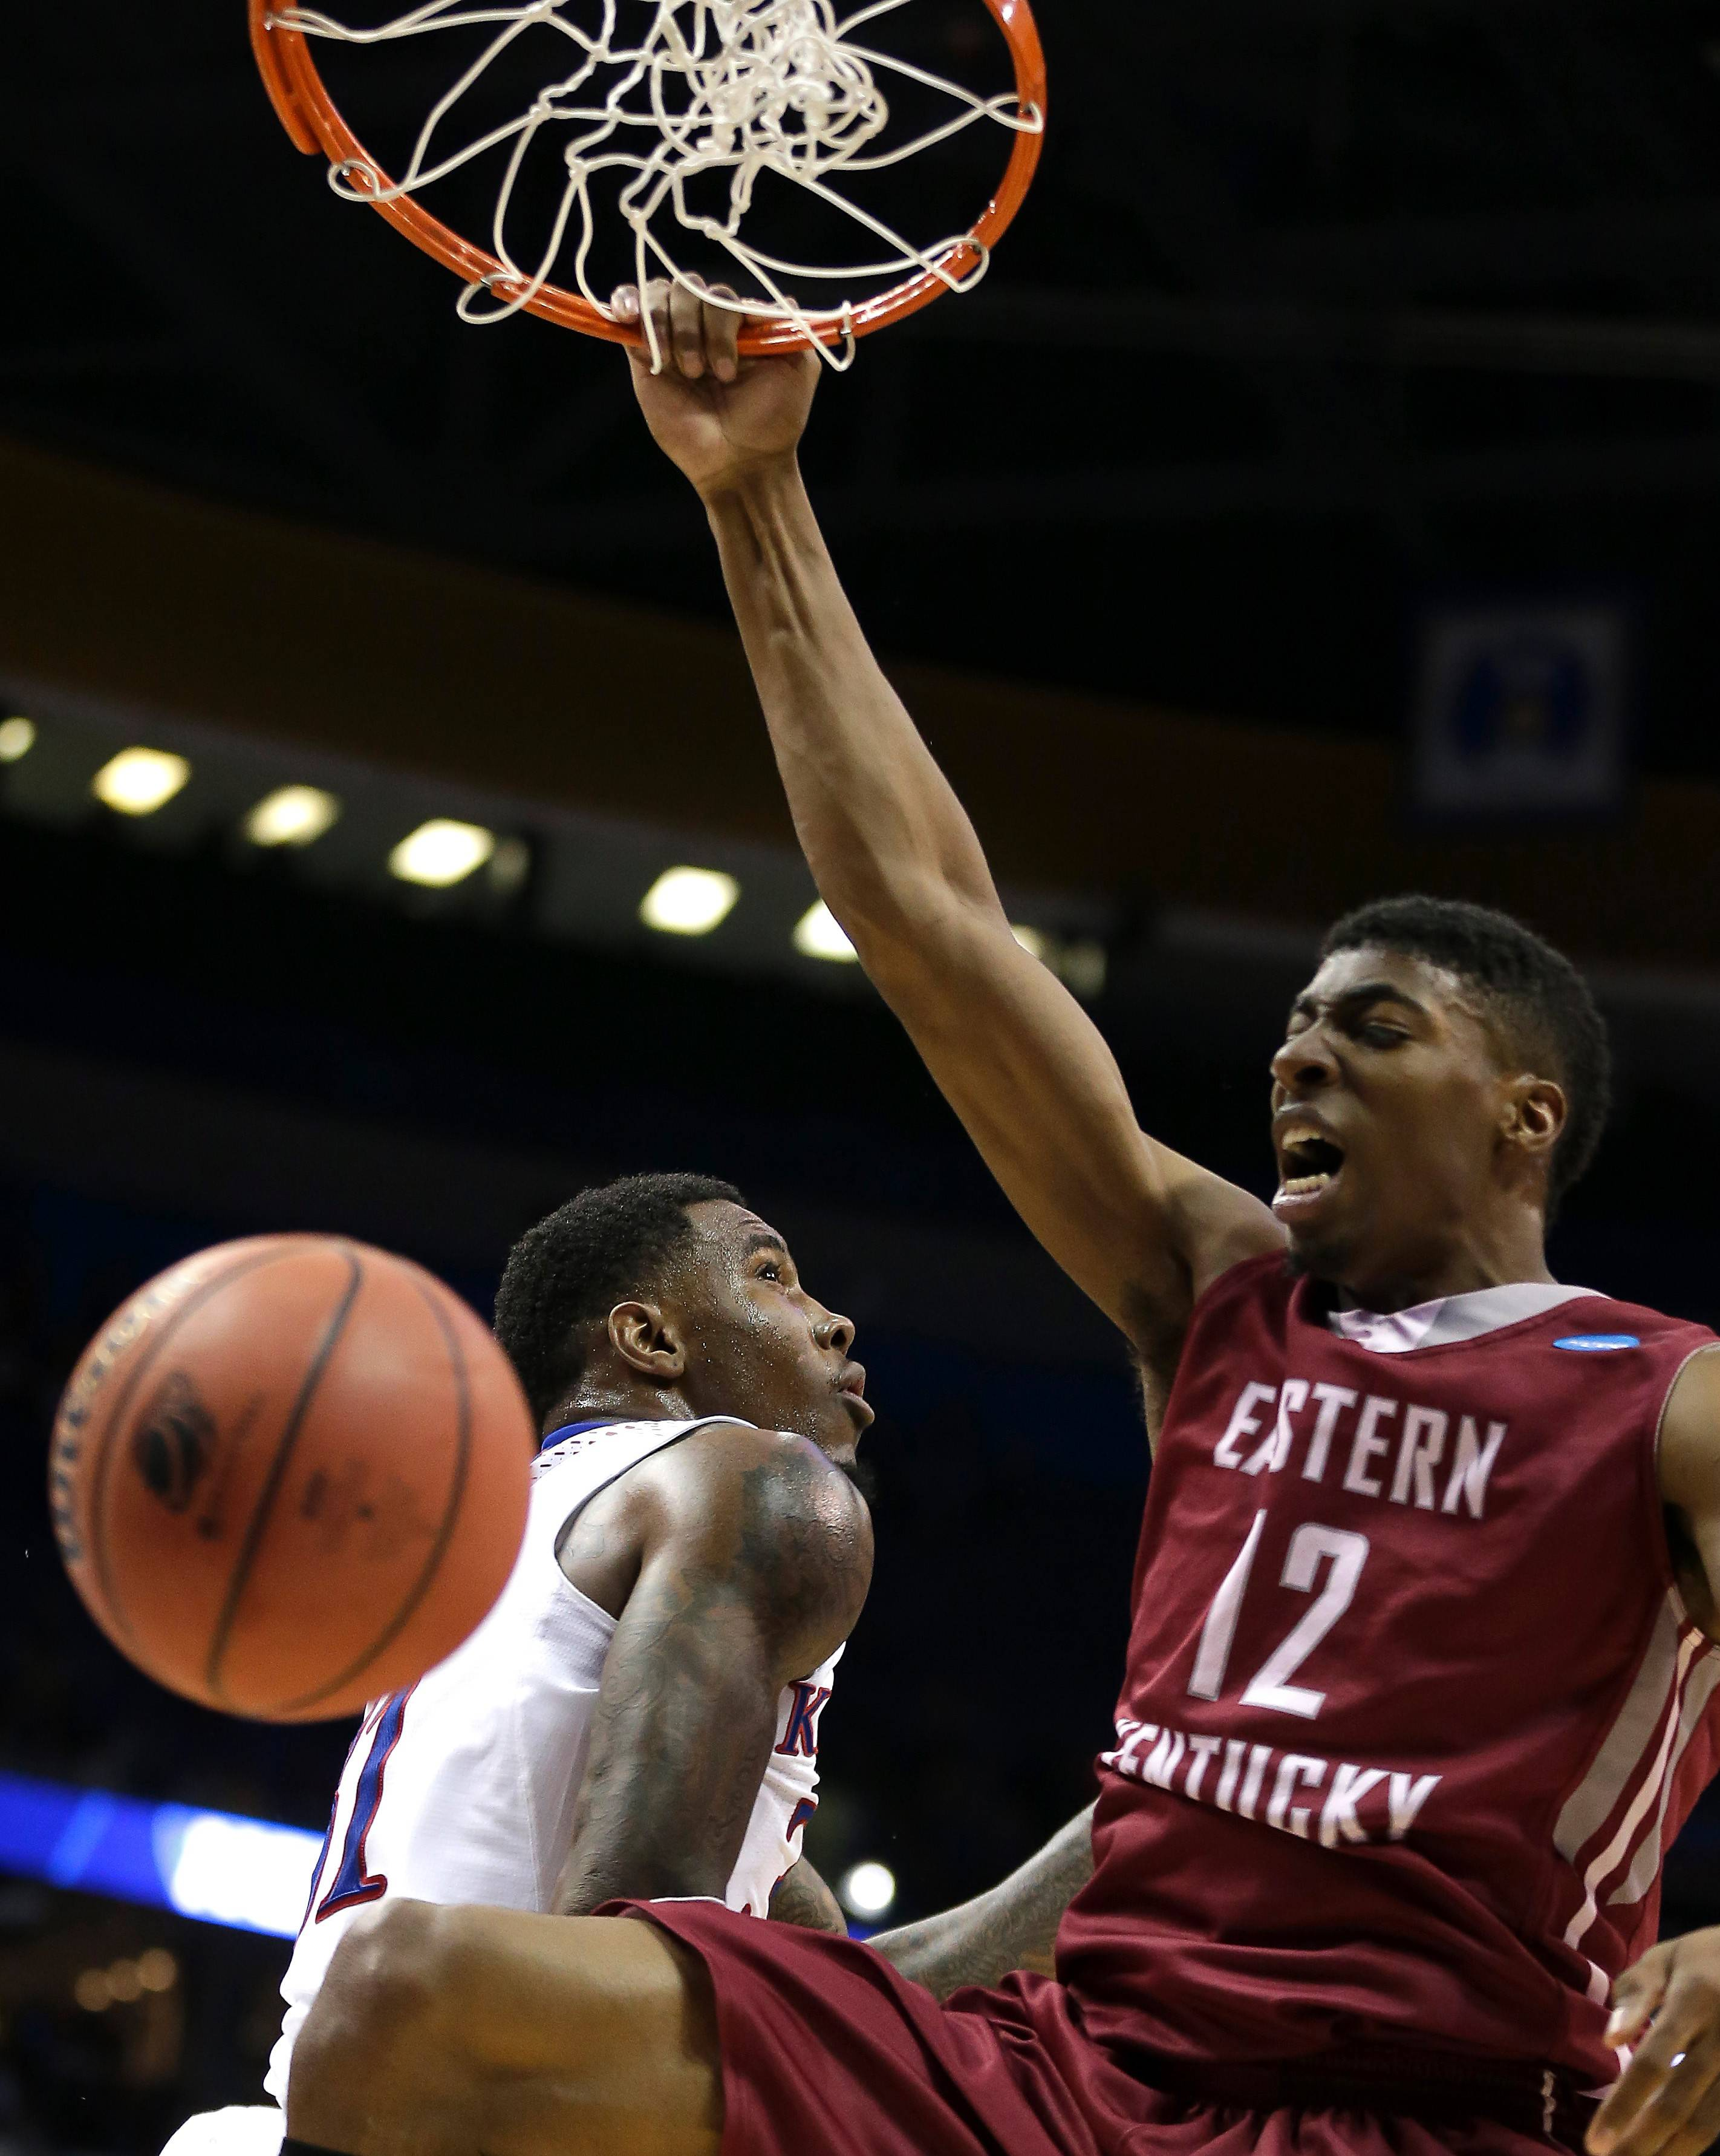 Eastern Kentucky's Marcus Lewis (12) gets past Kansas' Jamari Traylor to dunk the ball during the second half of a second-round game in the NCAA college basketball tournament March 21 in St. Louis. Kansas won the game 80-69.